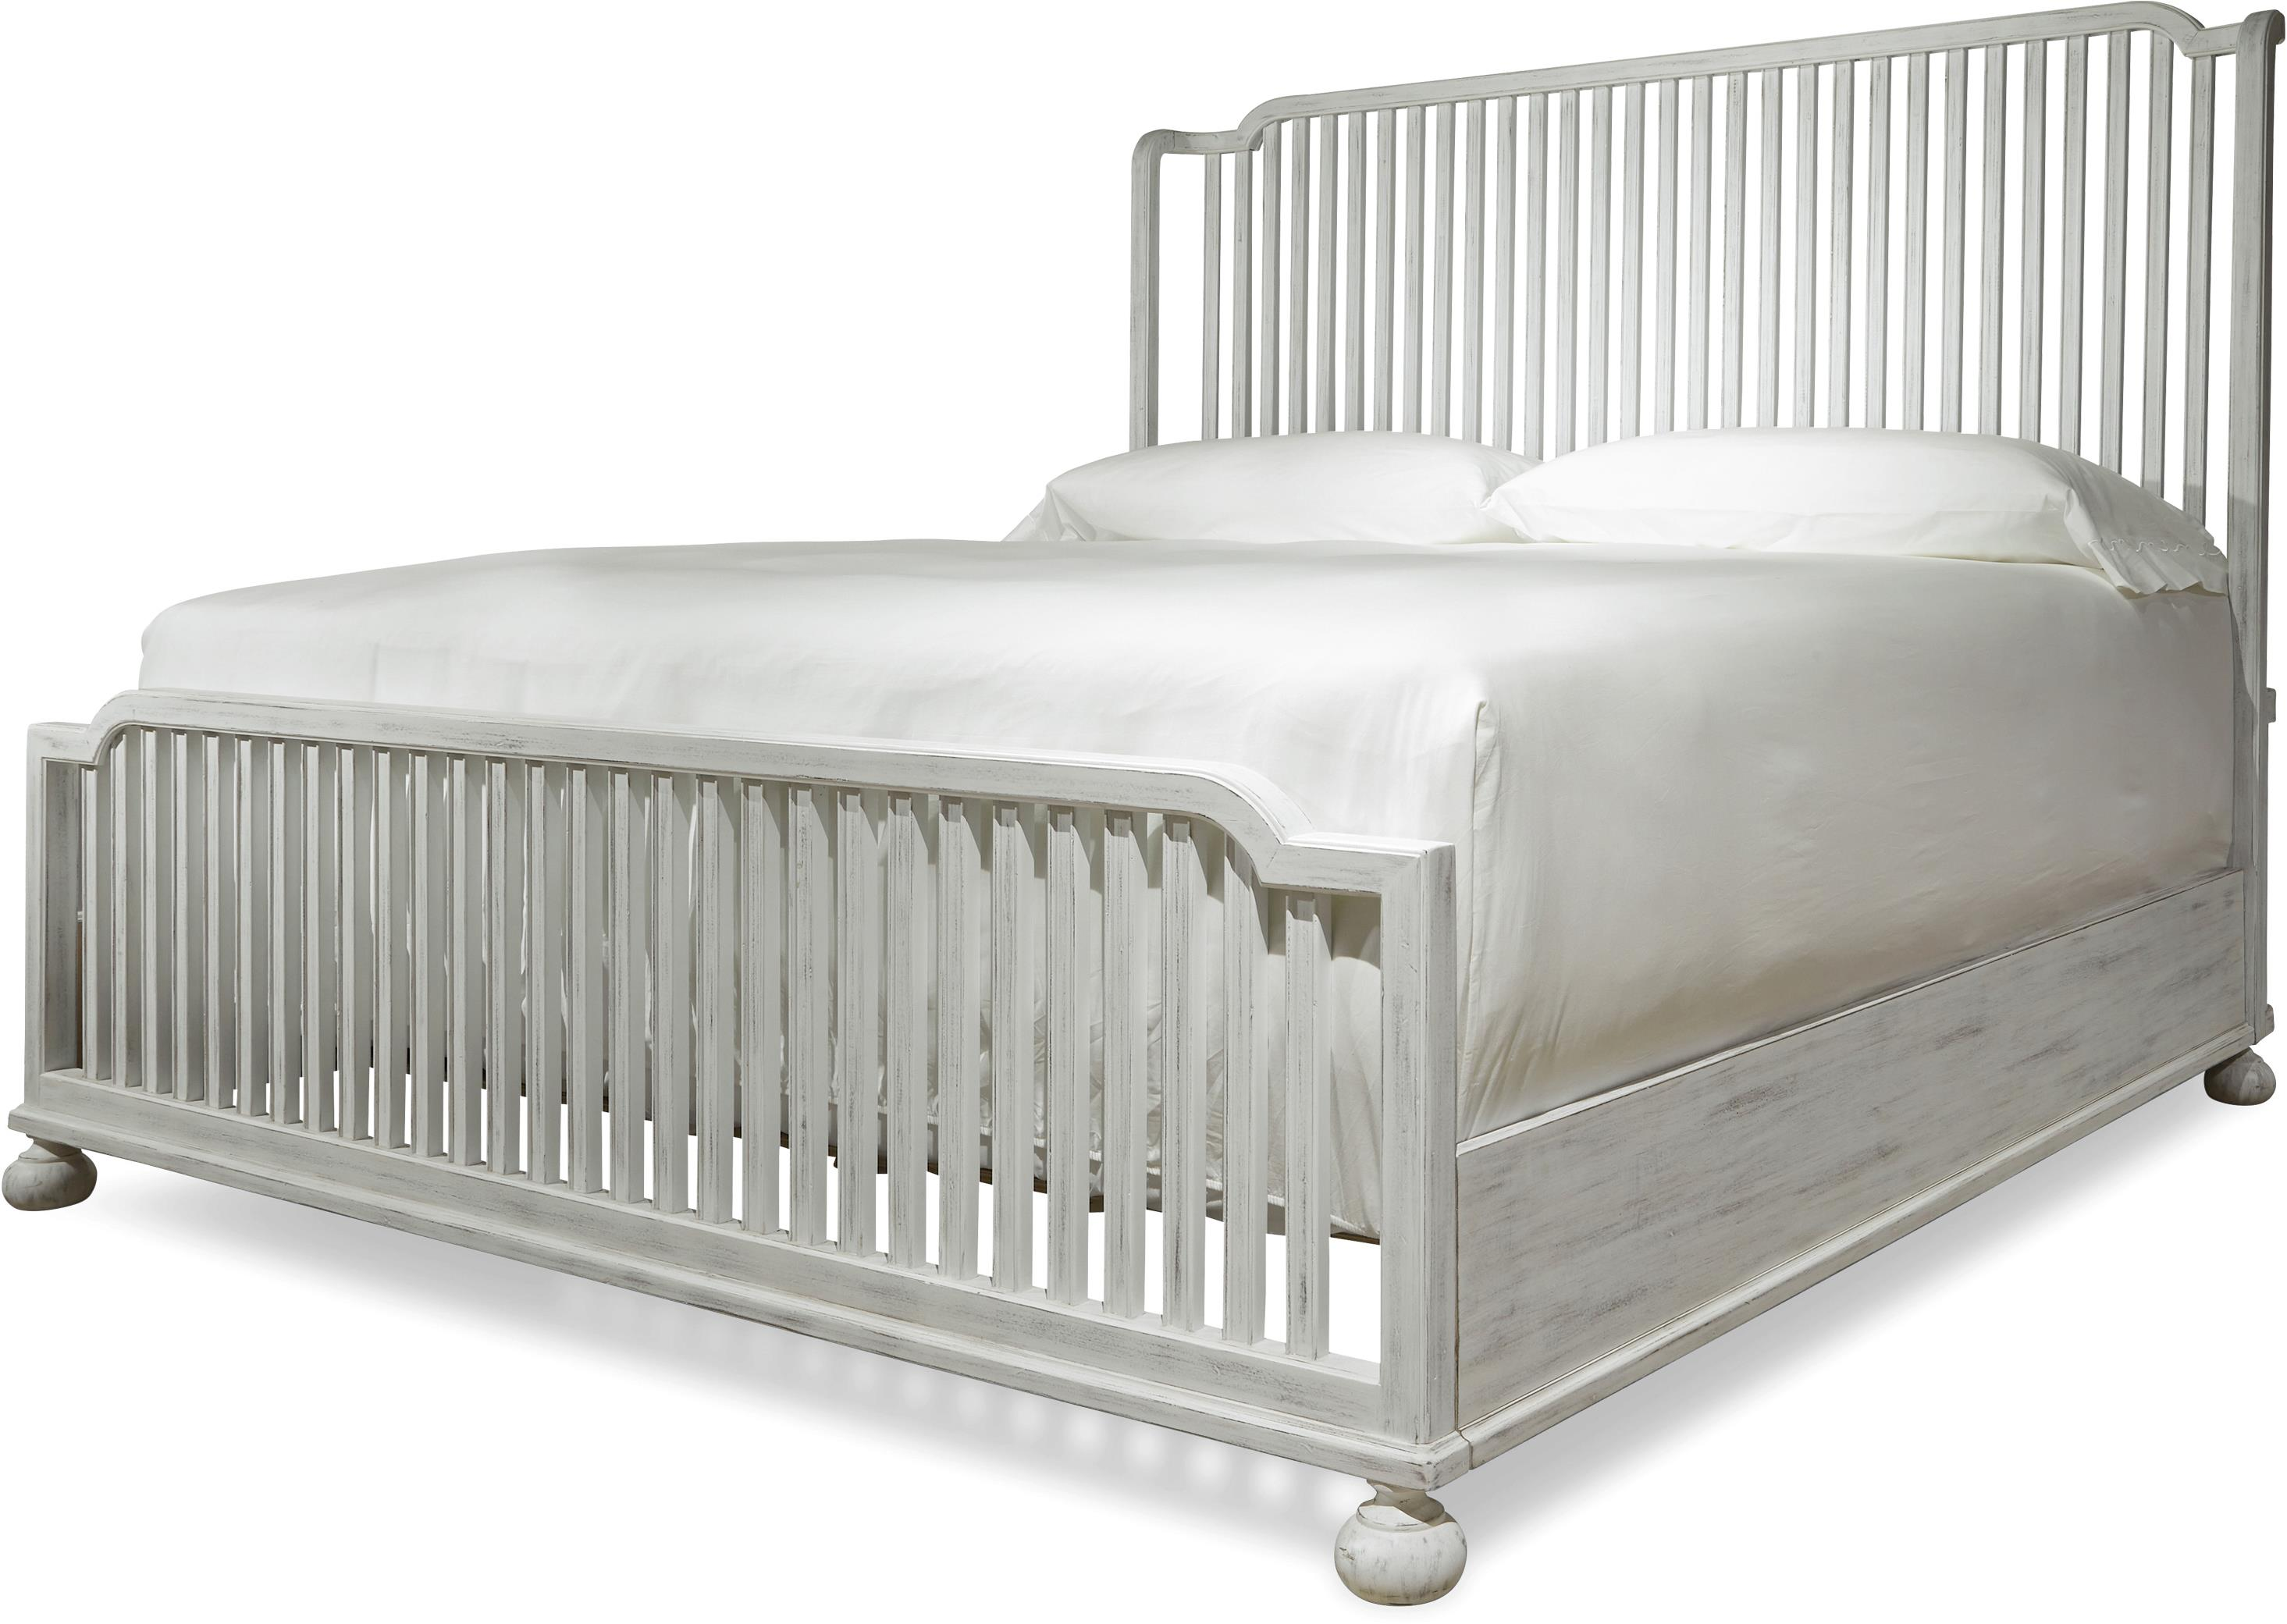 Paula Deen by Universal Dogwood The Tybee Island King Bed - Item Number: 597260B